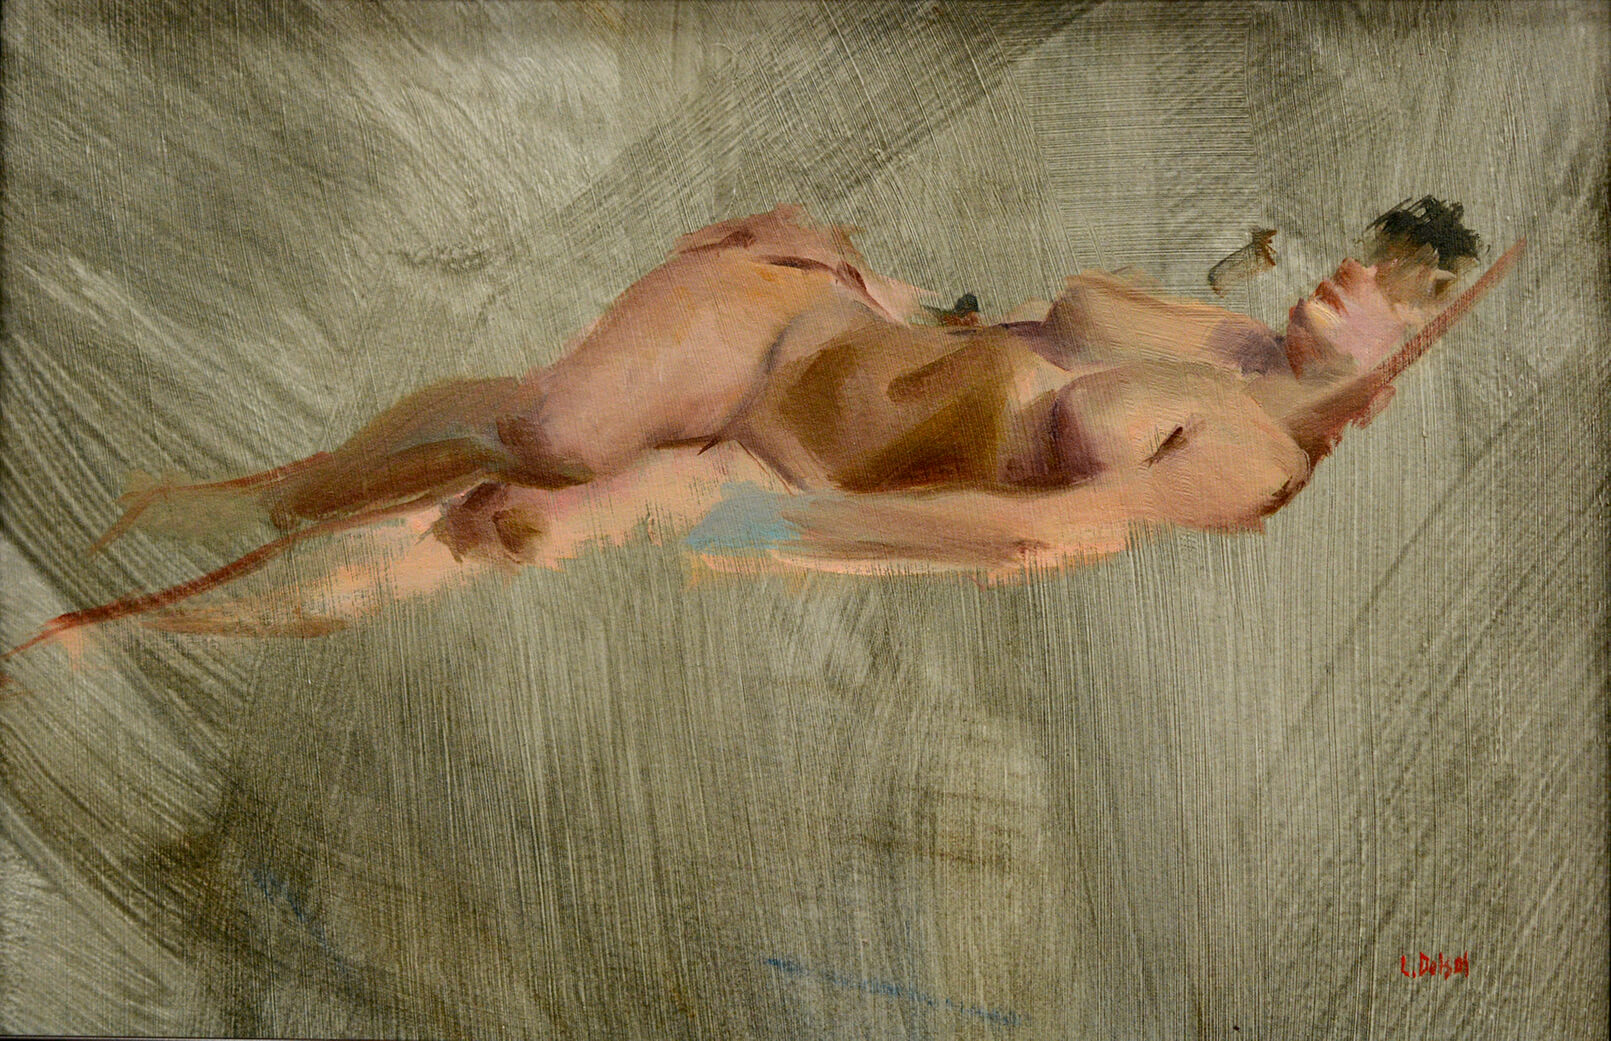 Gestural figurative oil painting of reclining nude woman in profile on lively brush stroked background